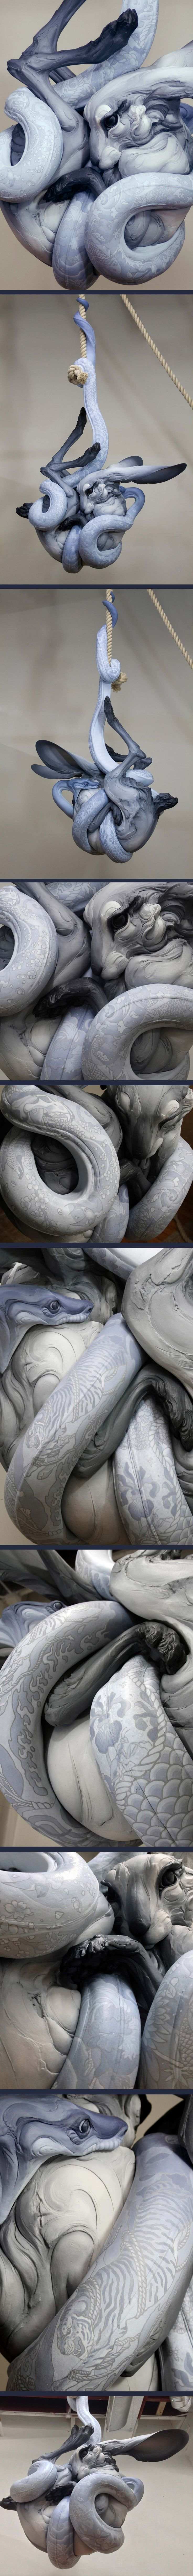 BETH CAVENER STICHTER | Tangled Up in You. Tattoos designed and painted by Alessandro Gallo. (Modern sculpture example)